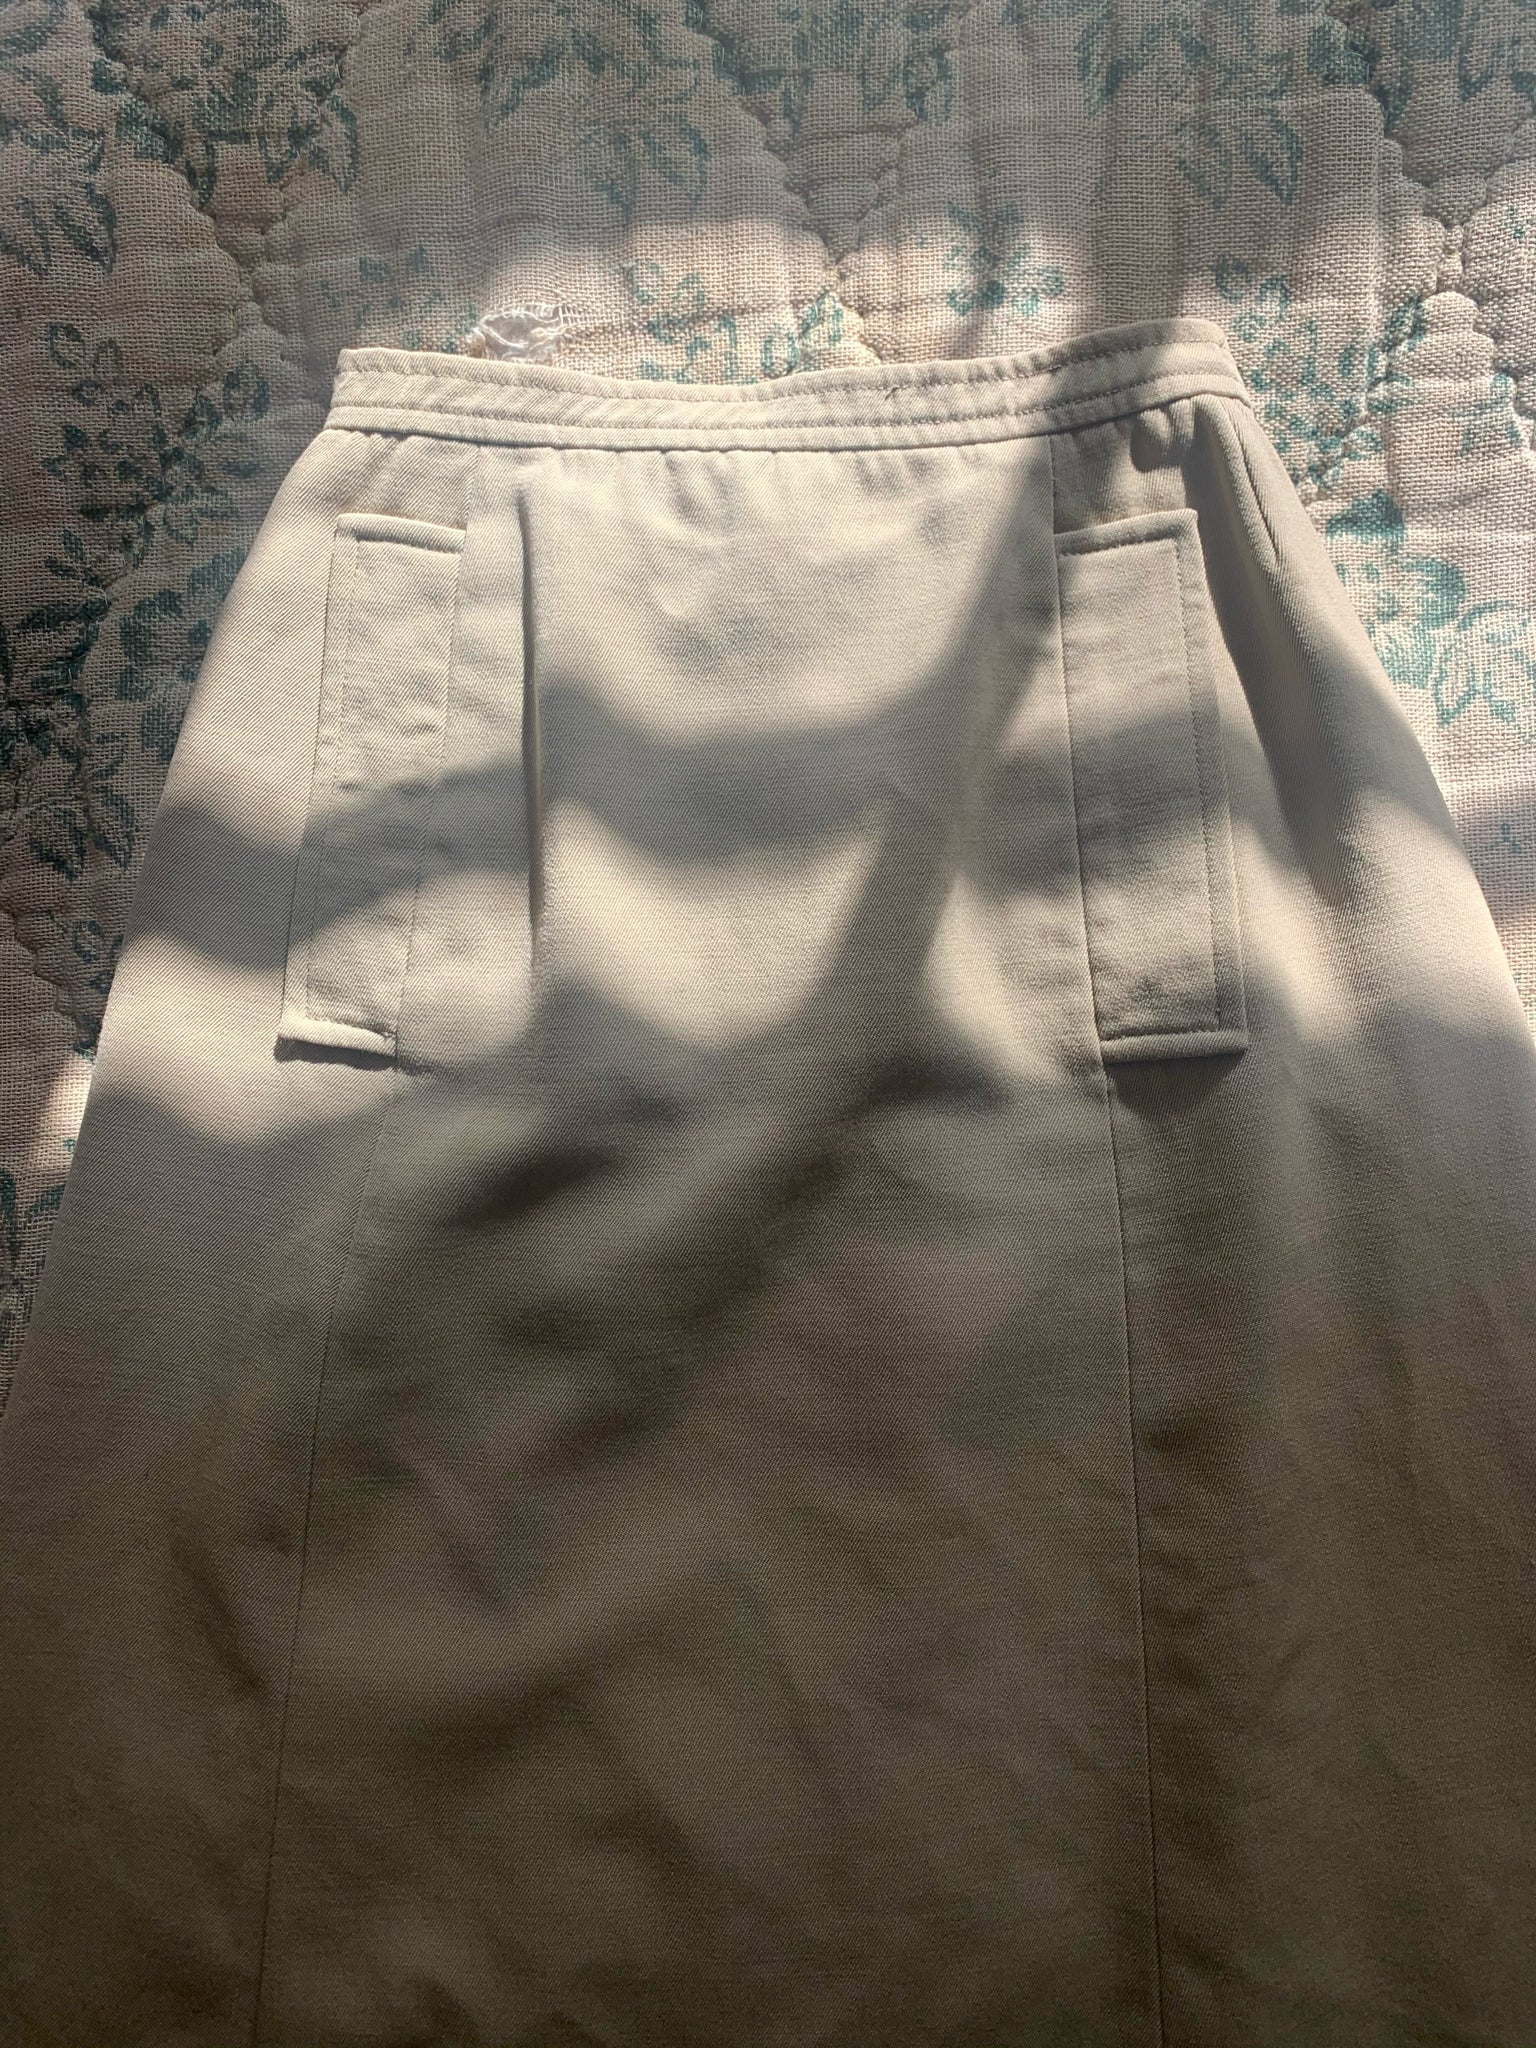 YVES SAINT LAURENT SAFARI SKIRT